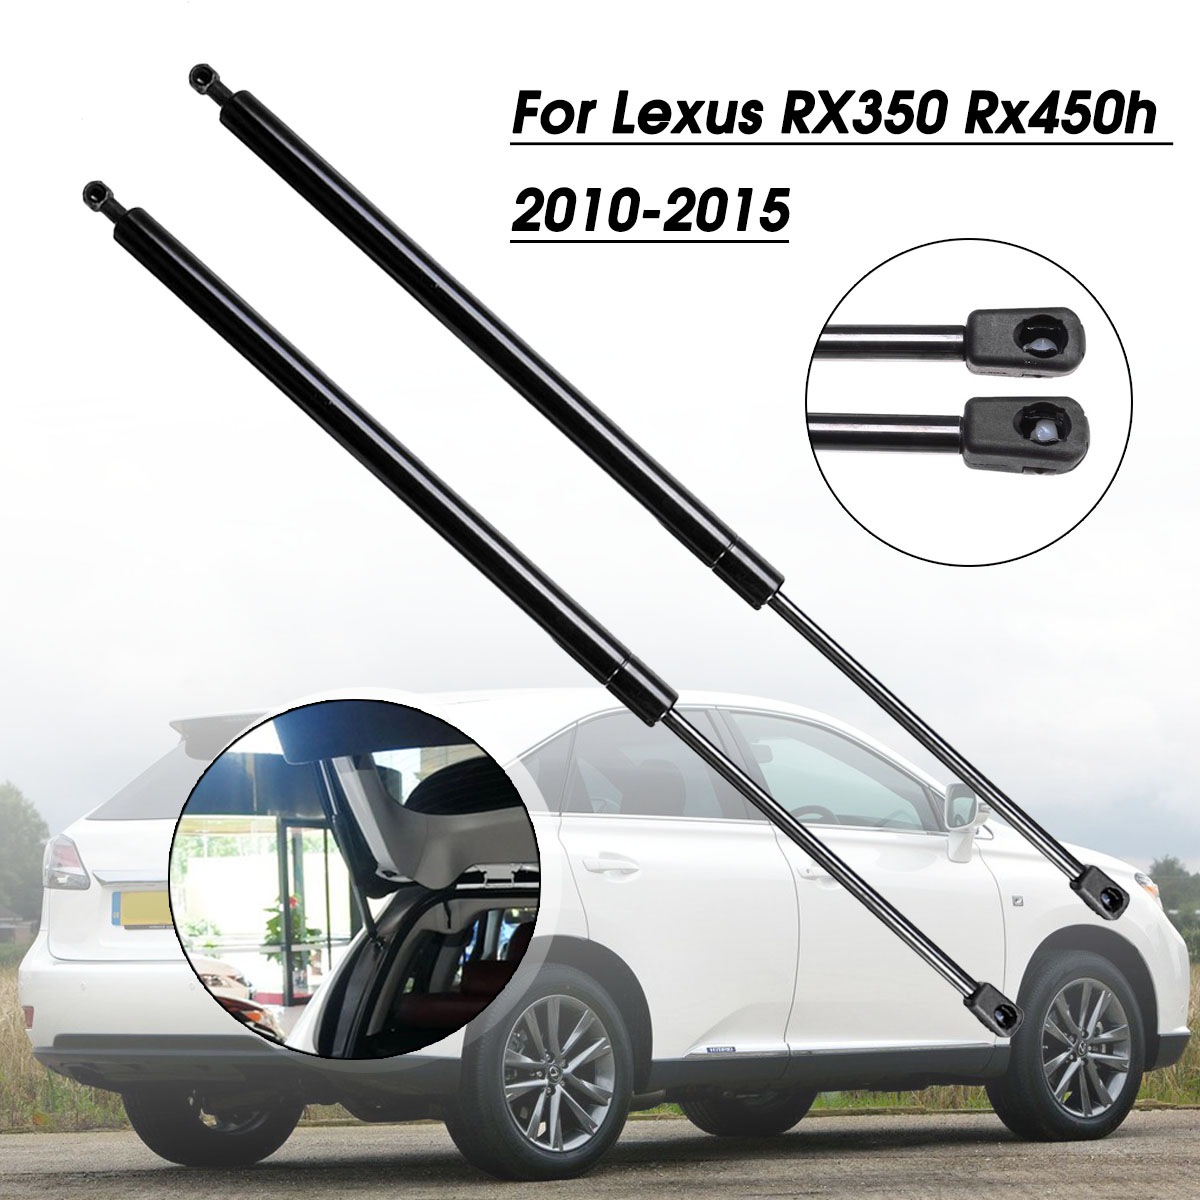 2X Rear Trunk Tailgate Tail Gate Boot Gas Spring Shock Lift Struts Support Rod Arm Bar For <font><b>Lexus</b></font> <font><b>RX350</b></font> RX450h 2010 2011 - 2015 image